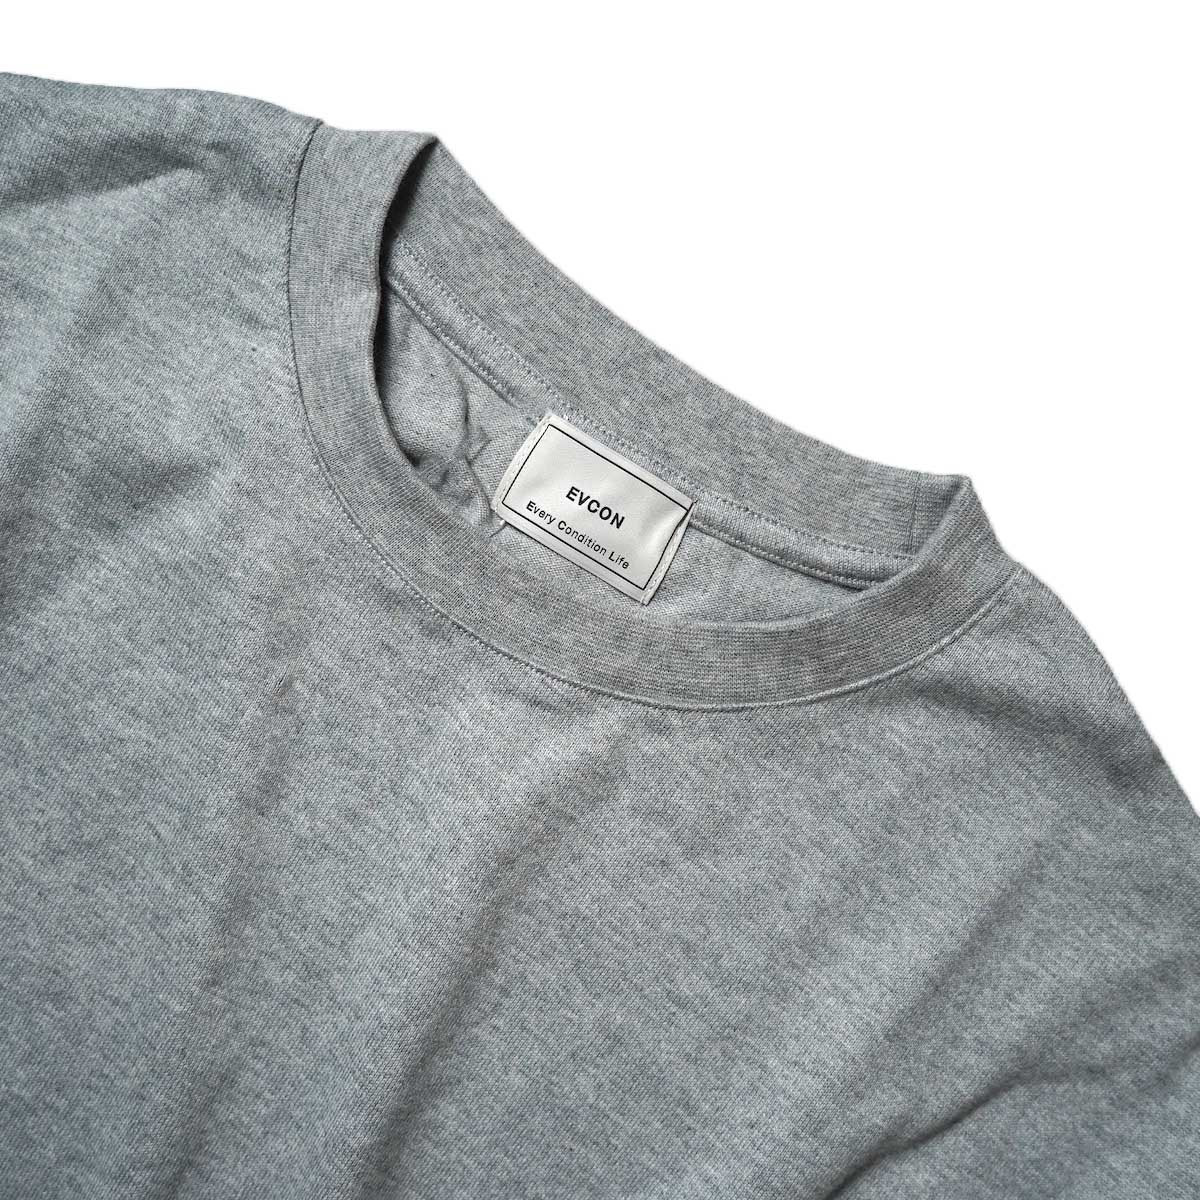 EVCON / WIDE L/S T-Shirt (Gray) クルーネック